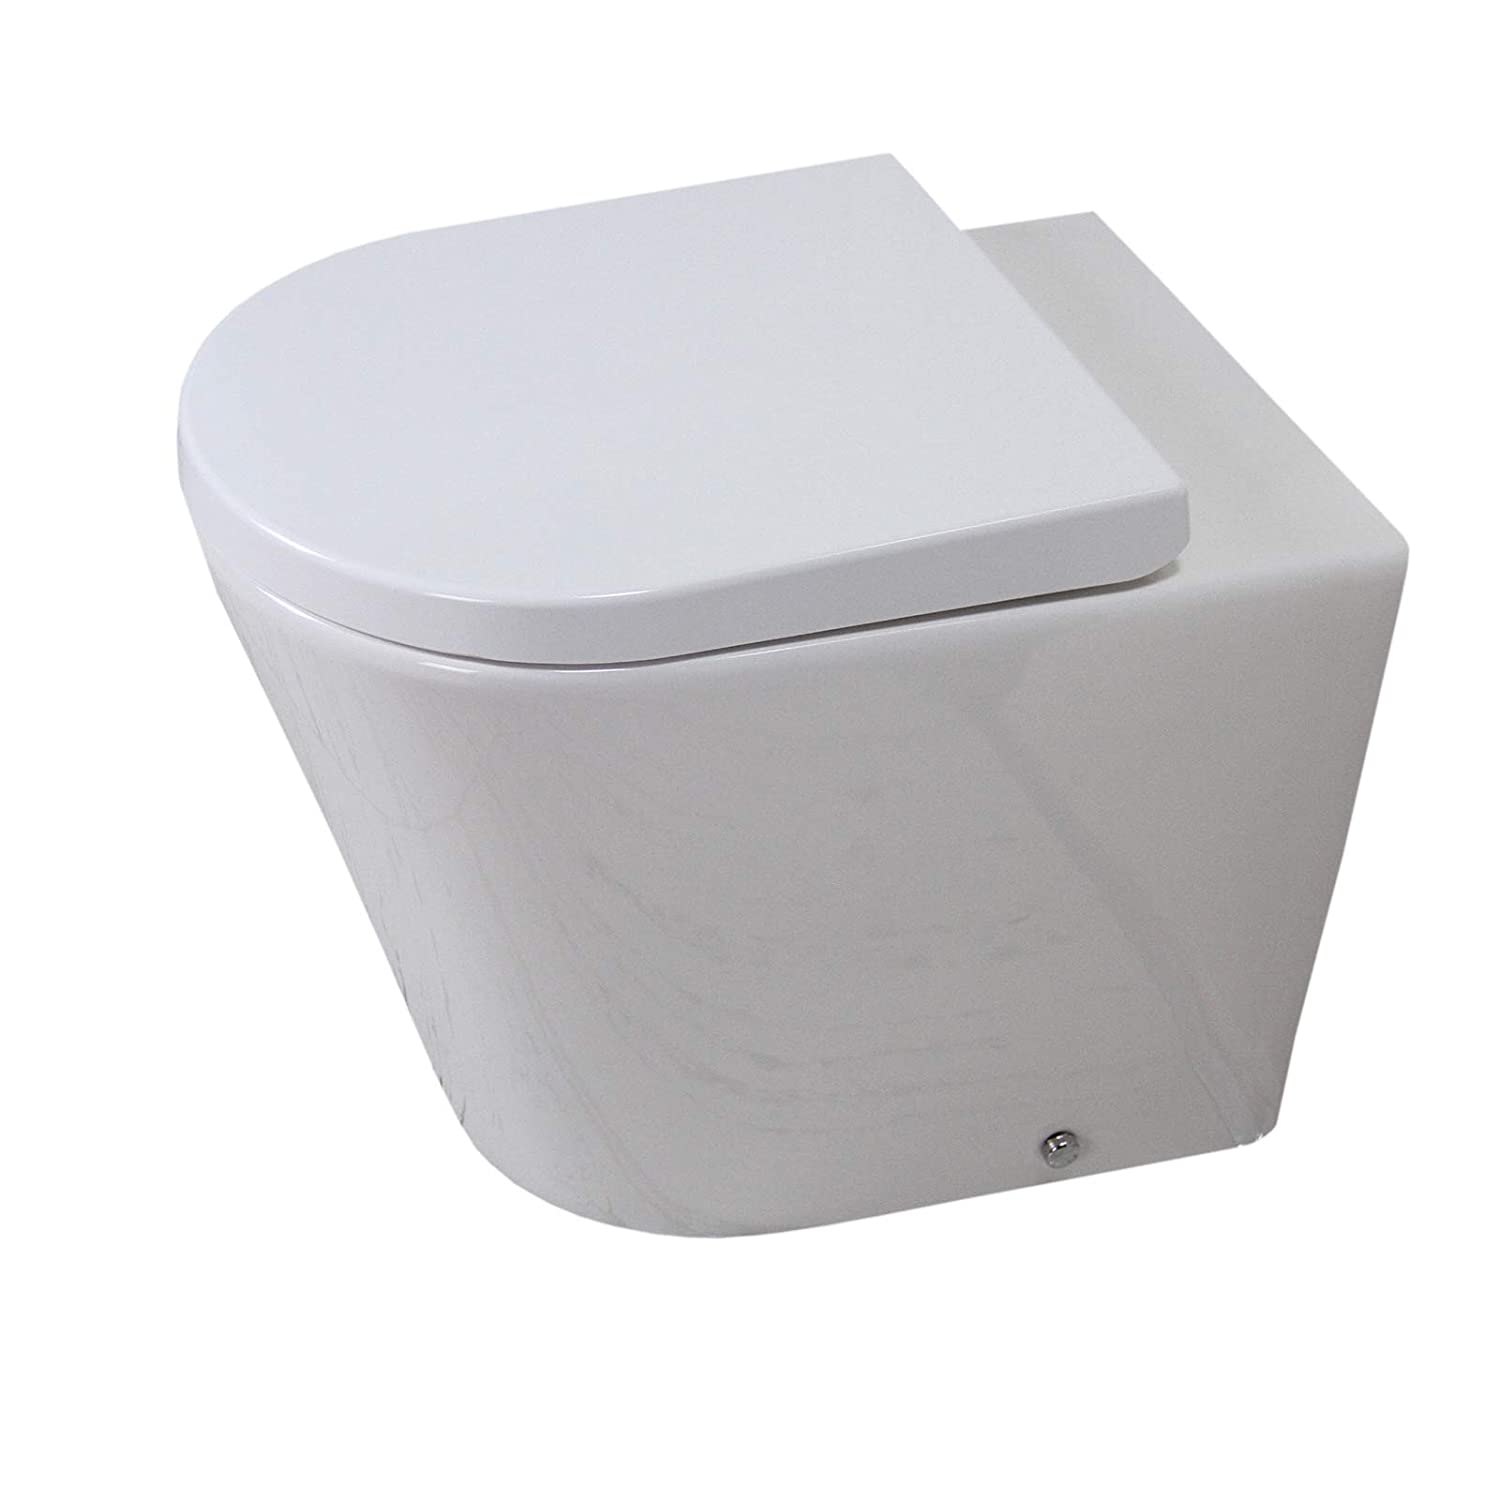 KLARA Toilet WC Bathroom Back to Wall Ceramic Rimless Soft Closing Seat Cover